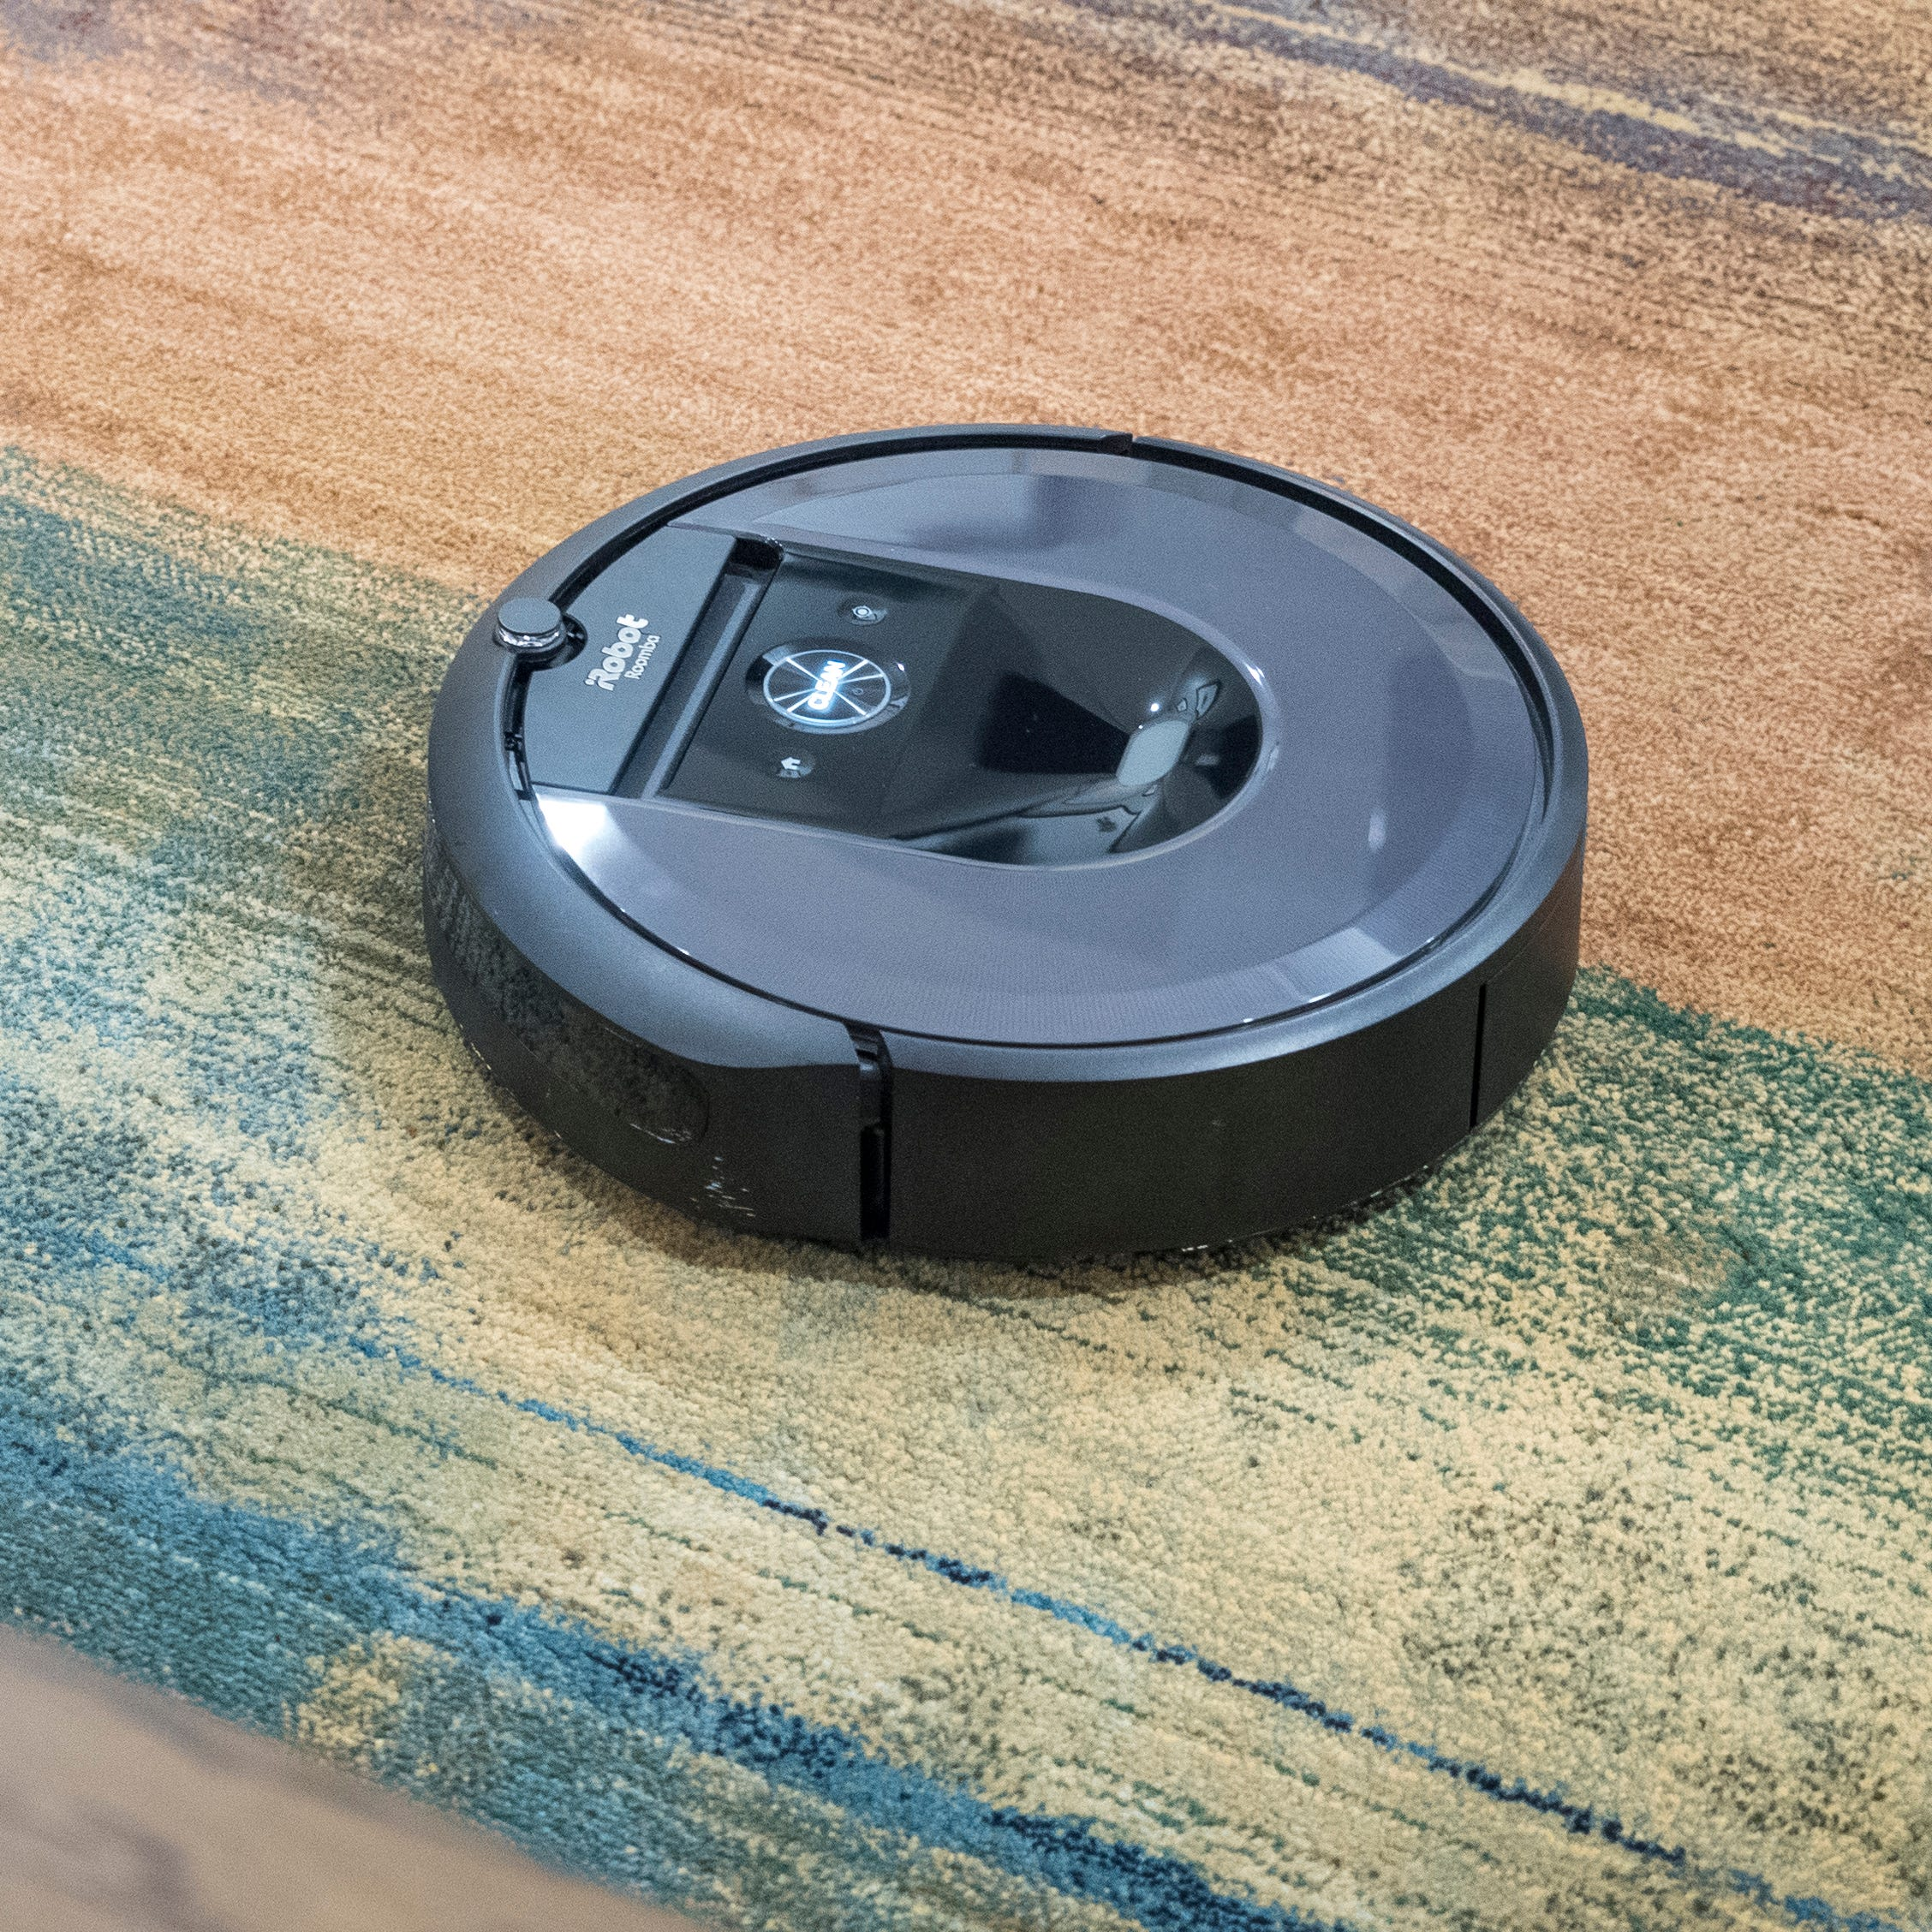 Get the best robot vacuum we've ever tested on sale for its lowest price ever.